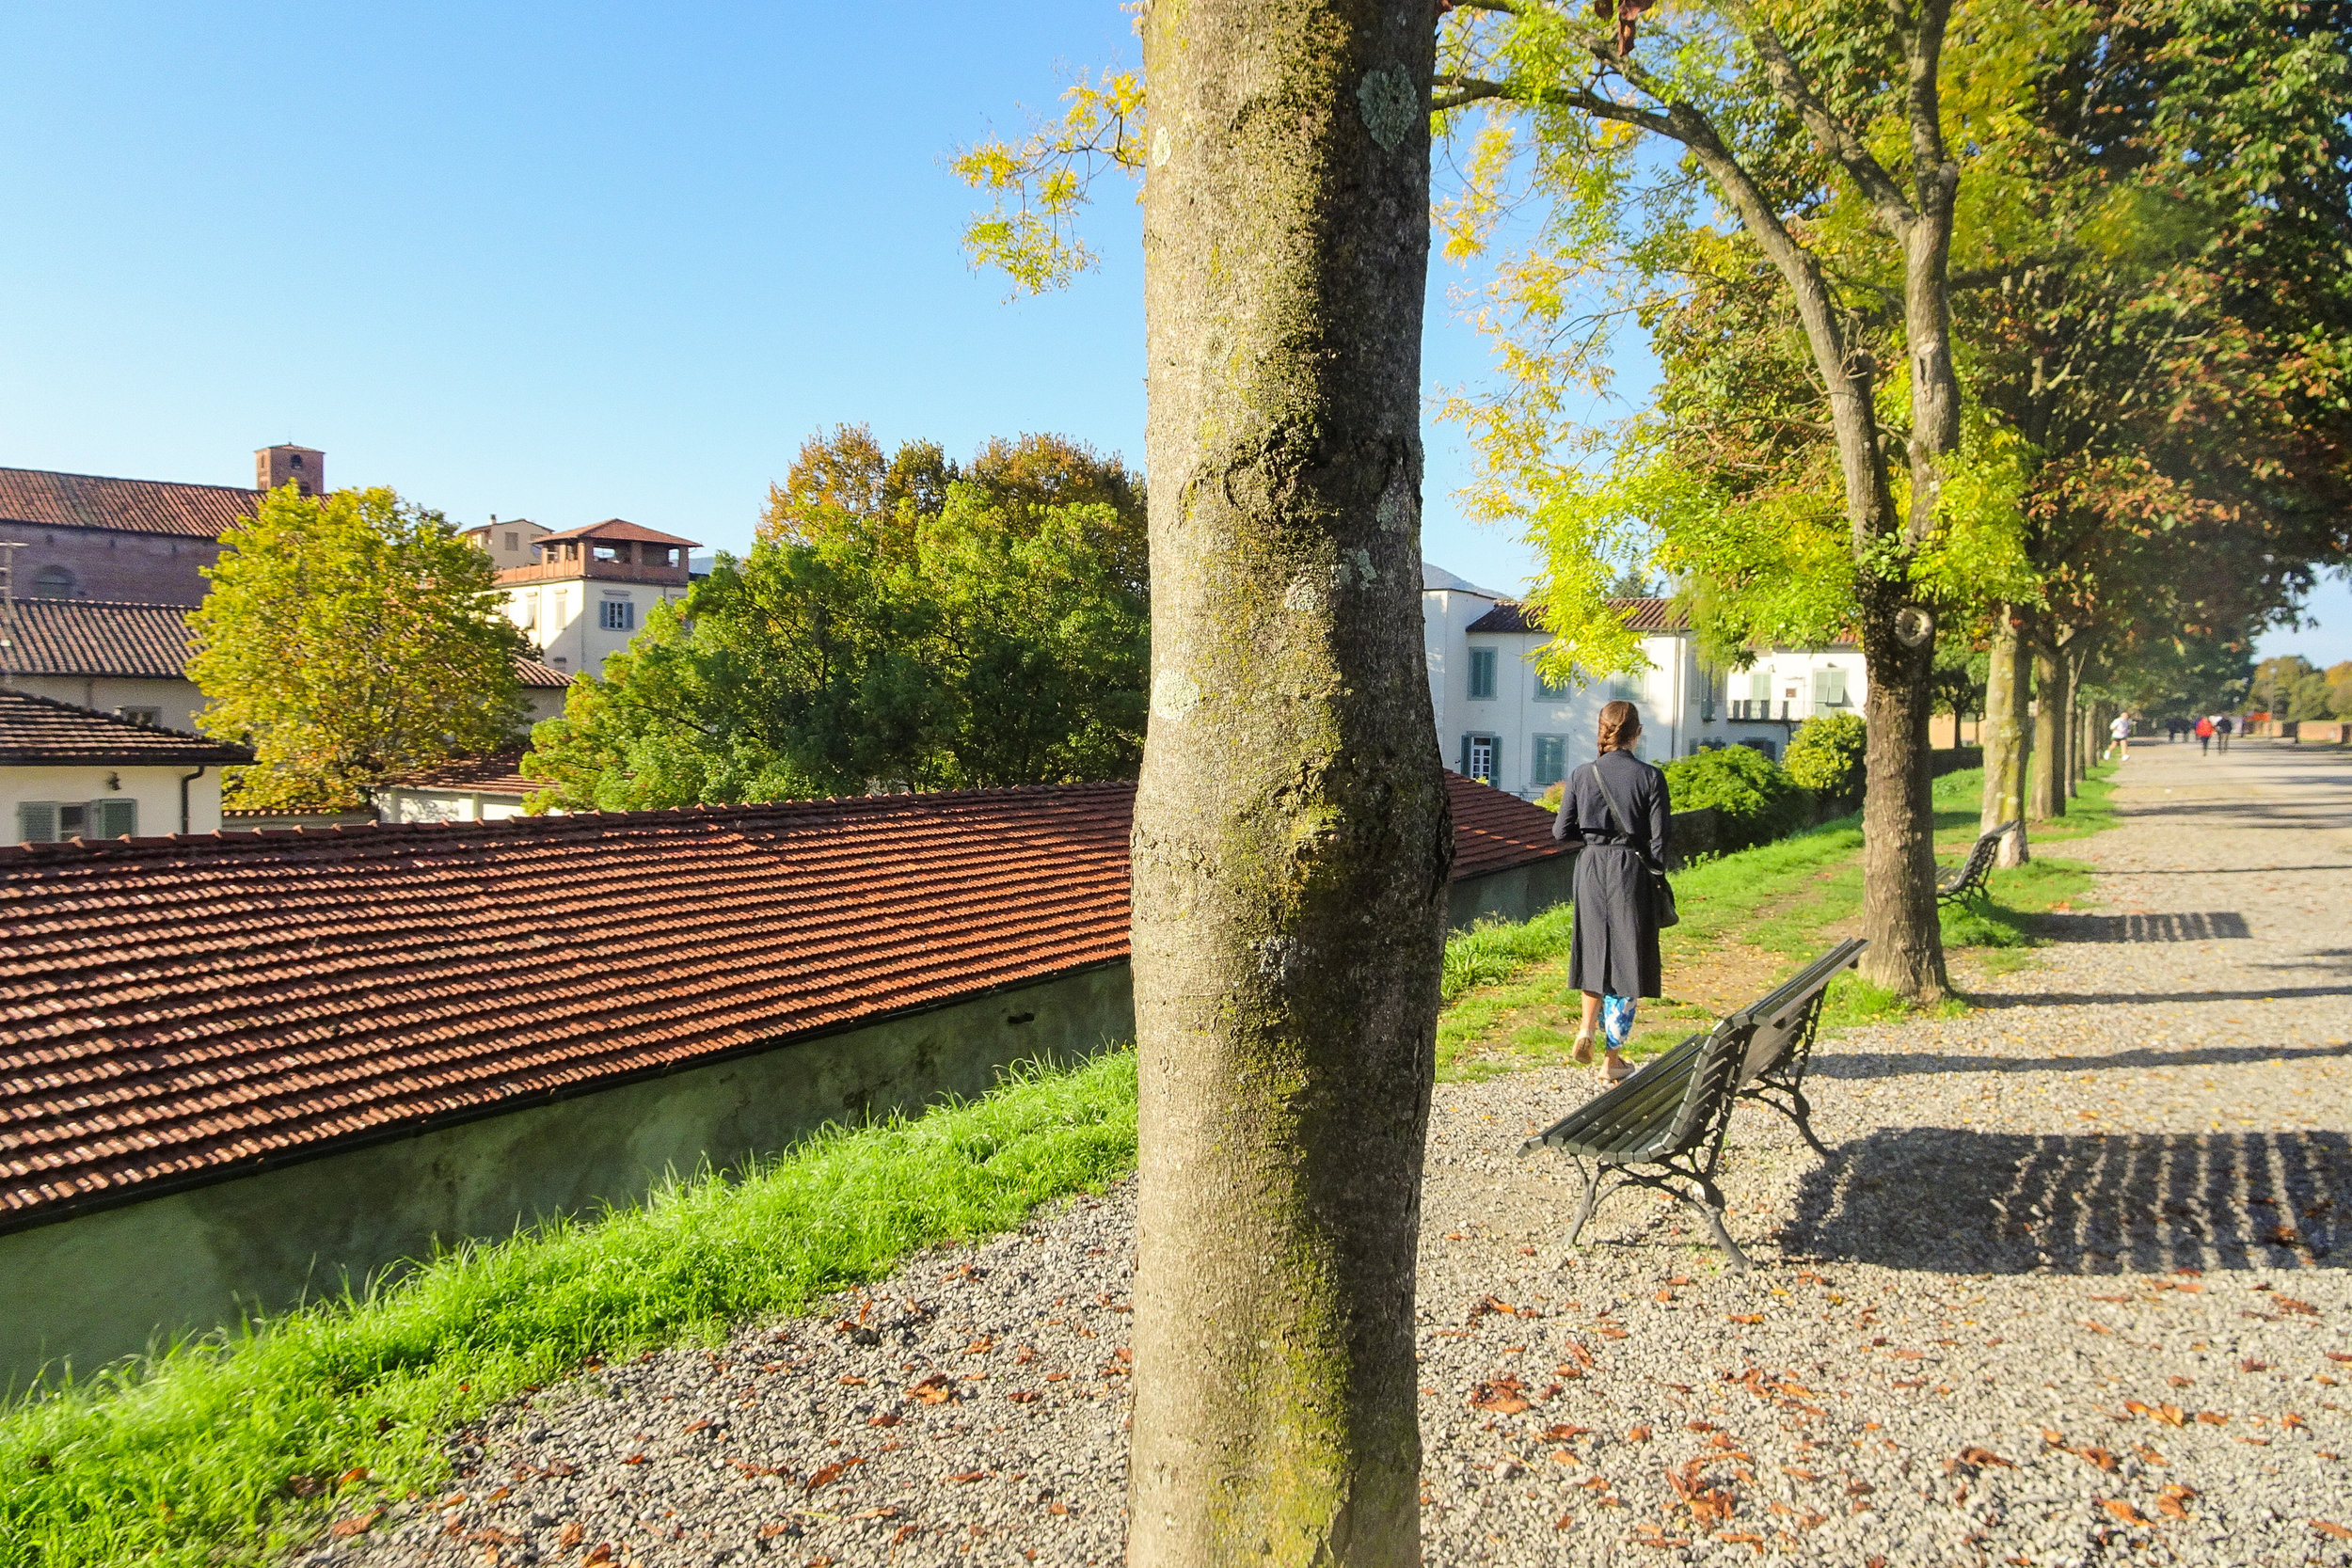 6.) Lucca - We were recommended to visit this medieval town by a friend. You can park for free outside the walls of Lucca, giving you access to explore its beautiful cobblestone lanes. Follow your nose and try some fresh pastries from one of the delicious bakeries.